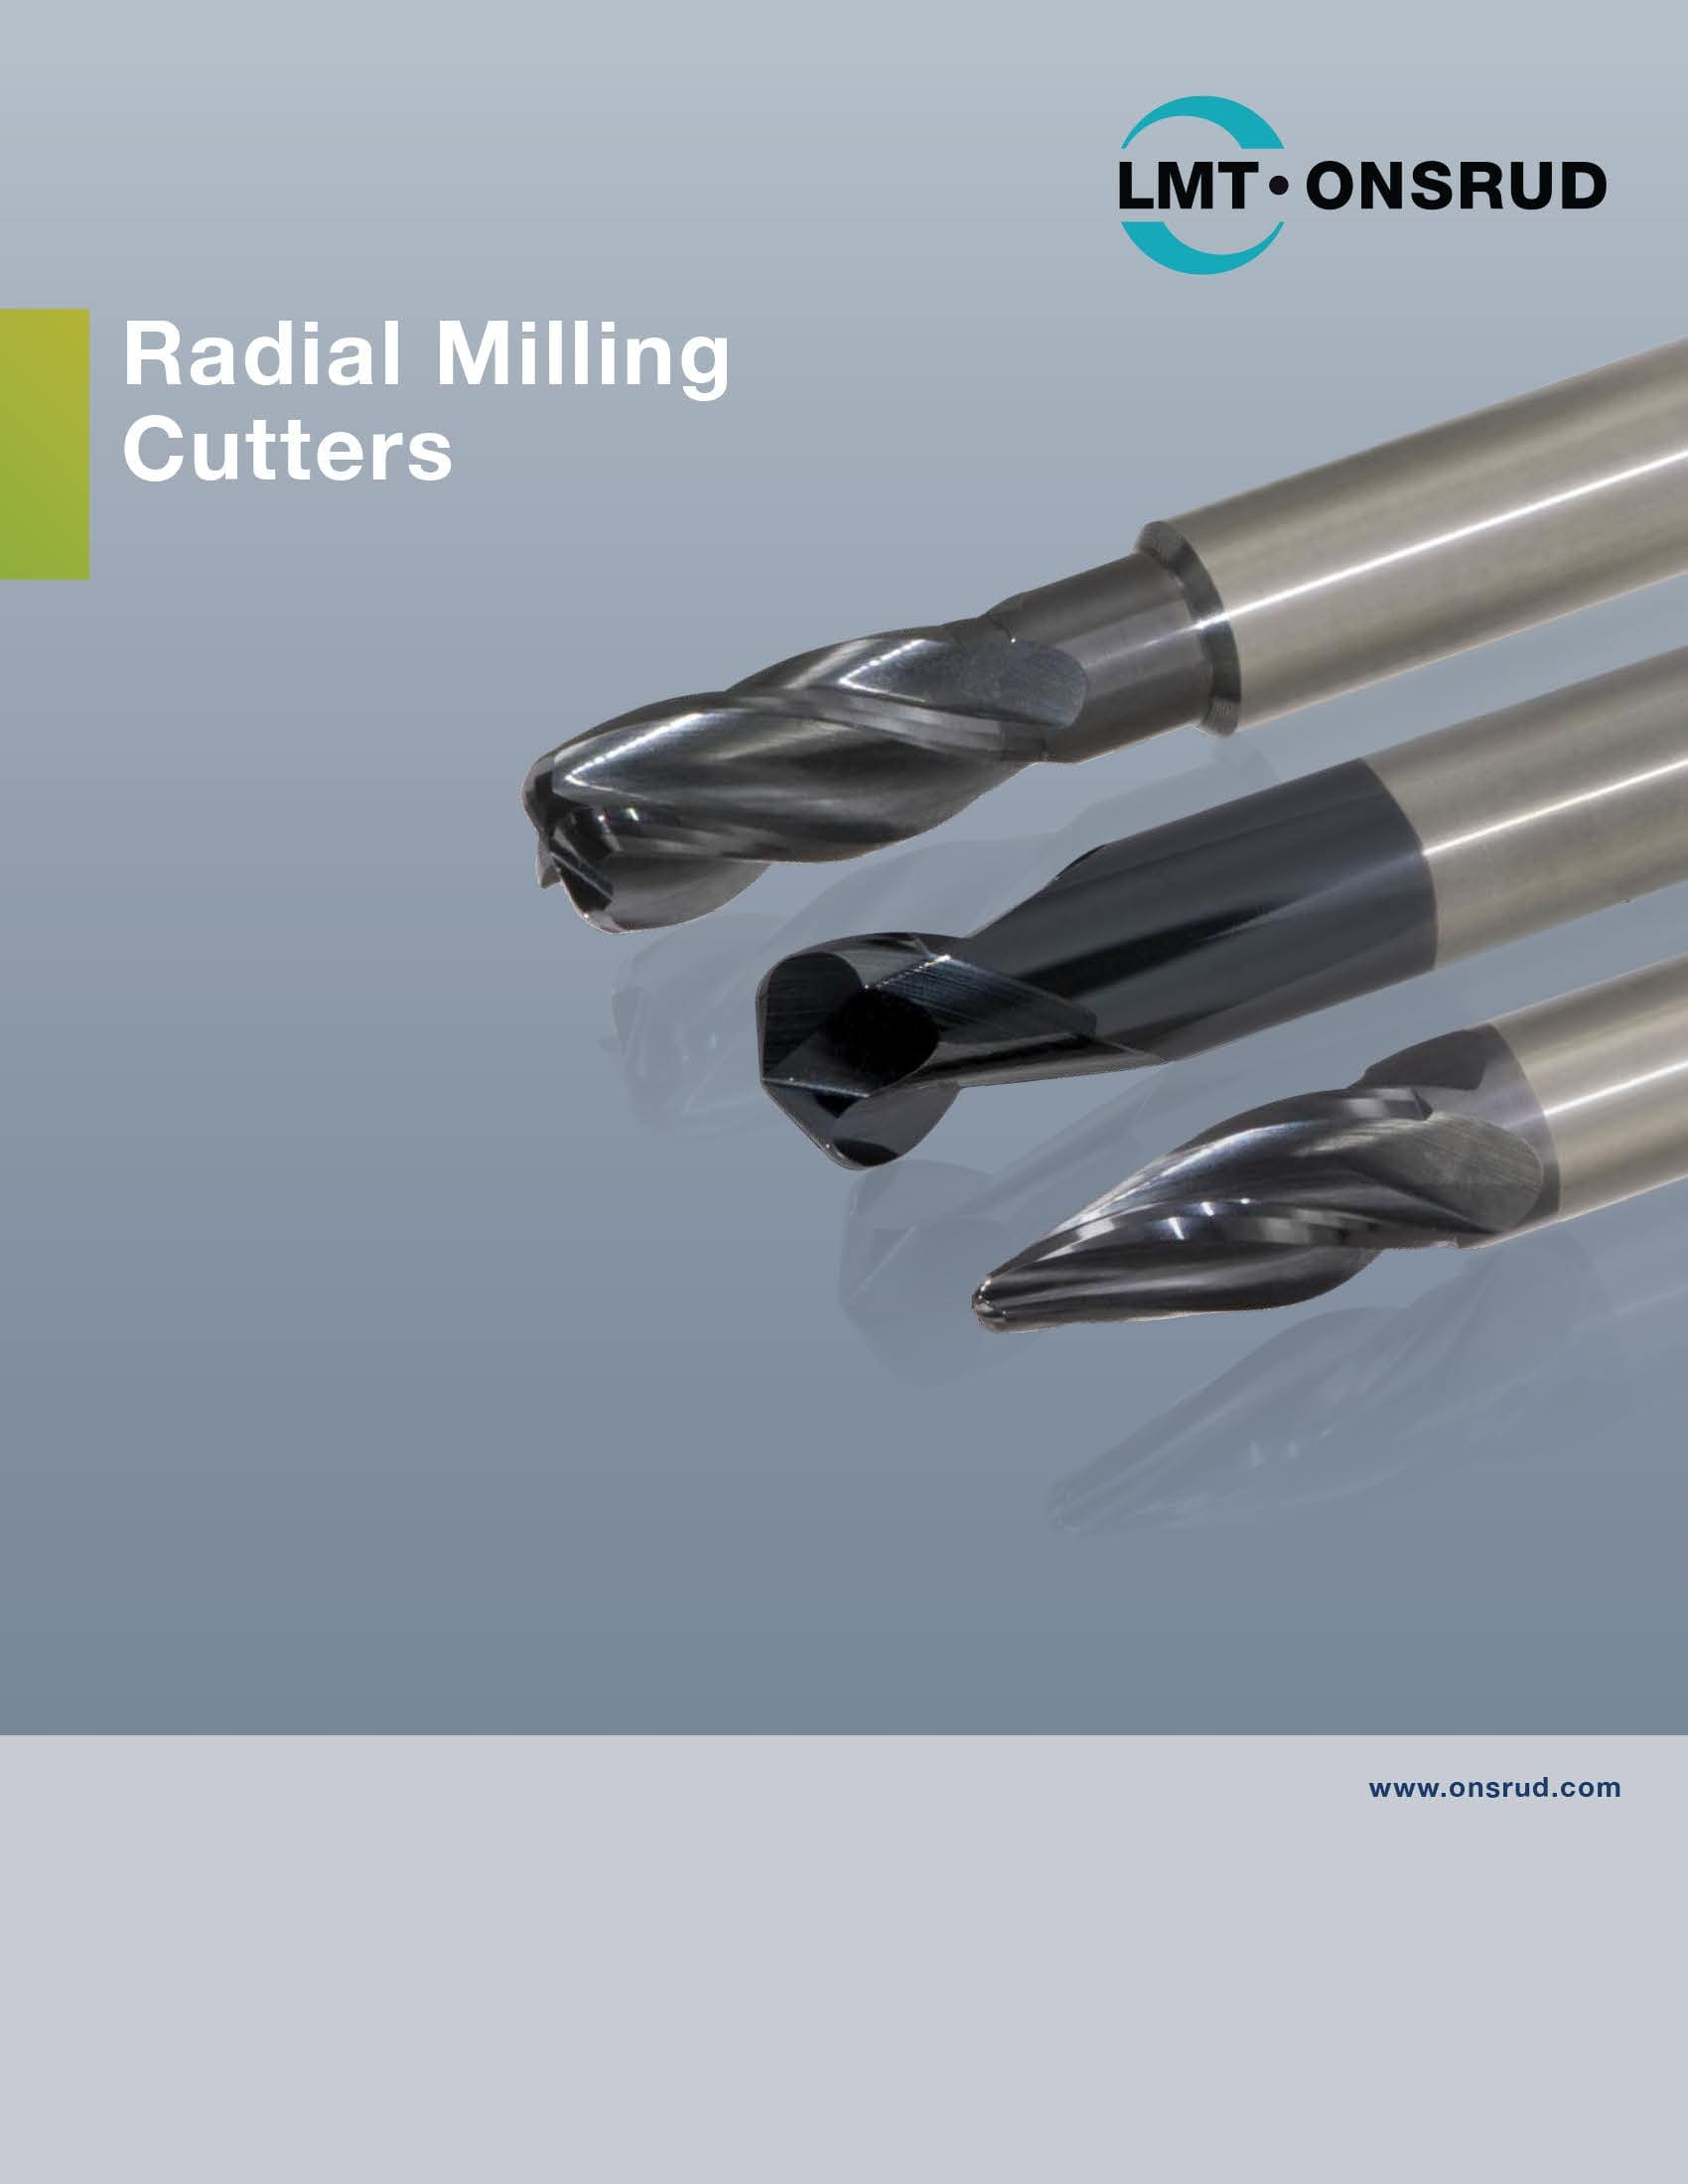 LMT Onsrud - Radial Milling Cutters